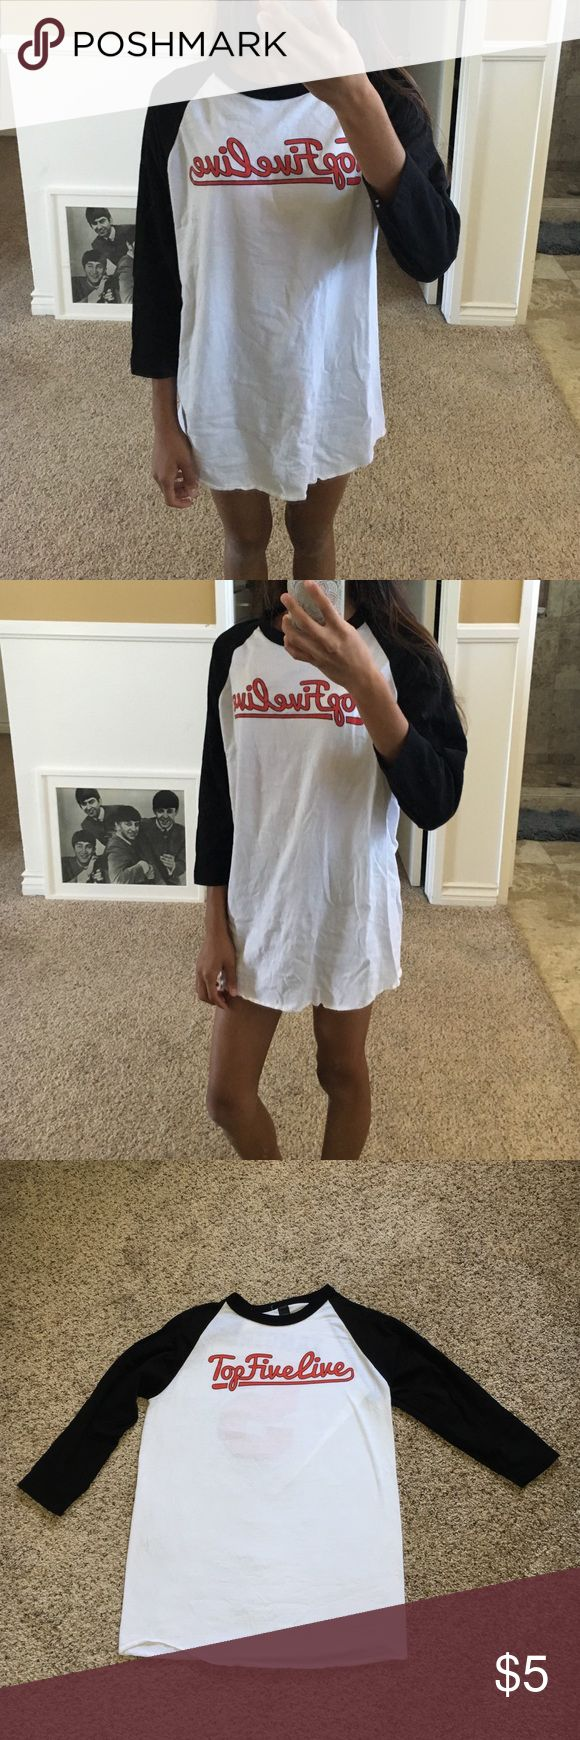 Top Five Line baseball tee Got this shirt from the MERRELL TWINS (if you know who they are) from vidcon!! Super comfortable for either pajamas or to wear to school. Size small but fits medium/large Tops Tees - Long Sleeve